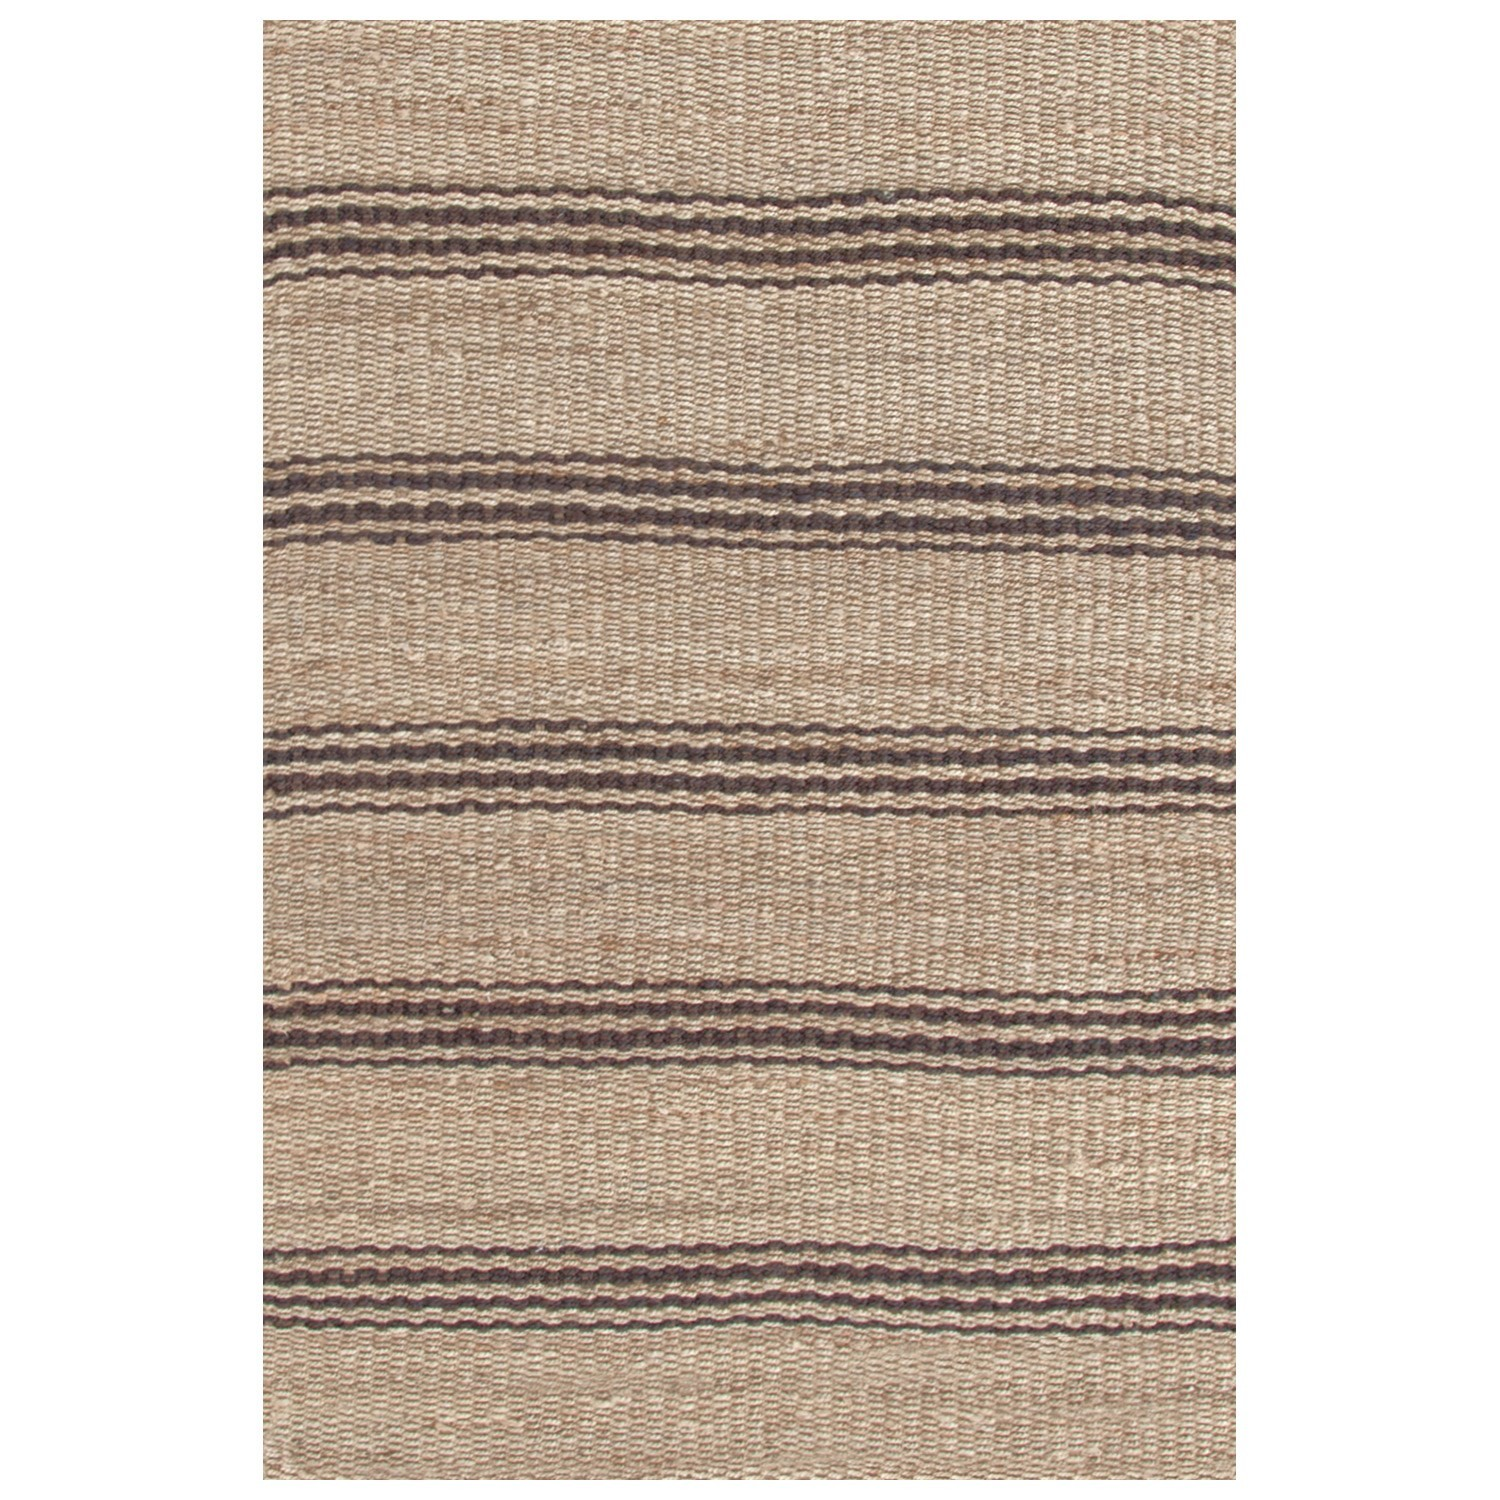 Dash Albert Jute Ticking Java Woven Rug Tuvalu Coastal Home